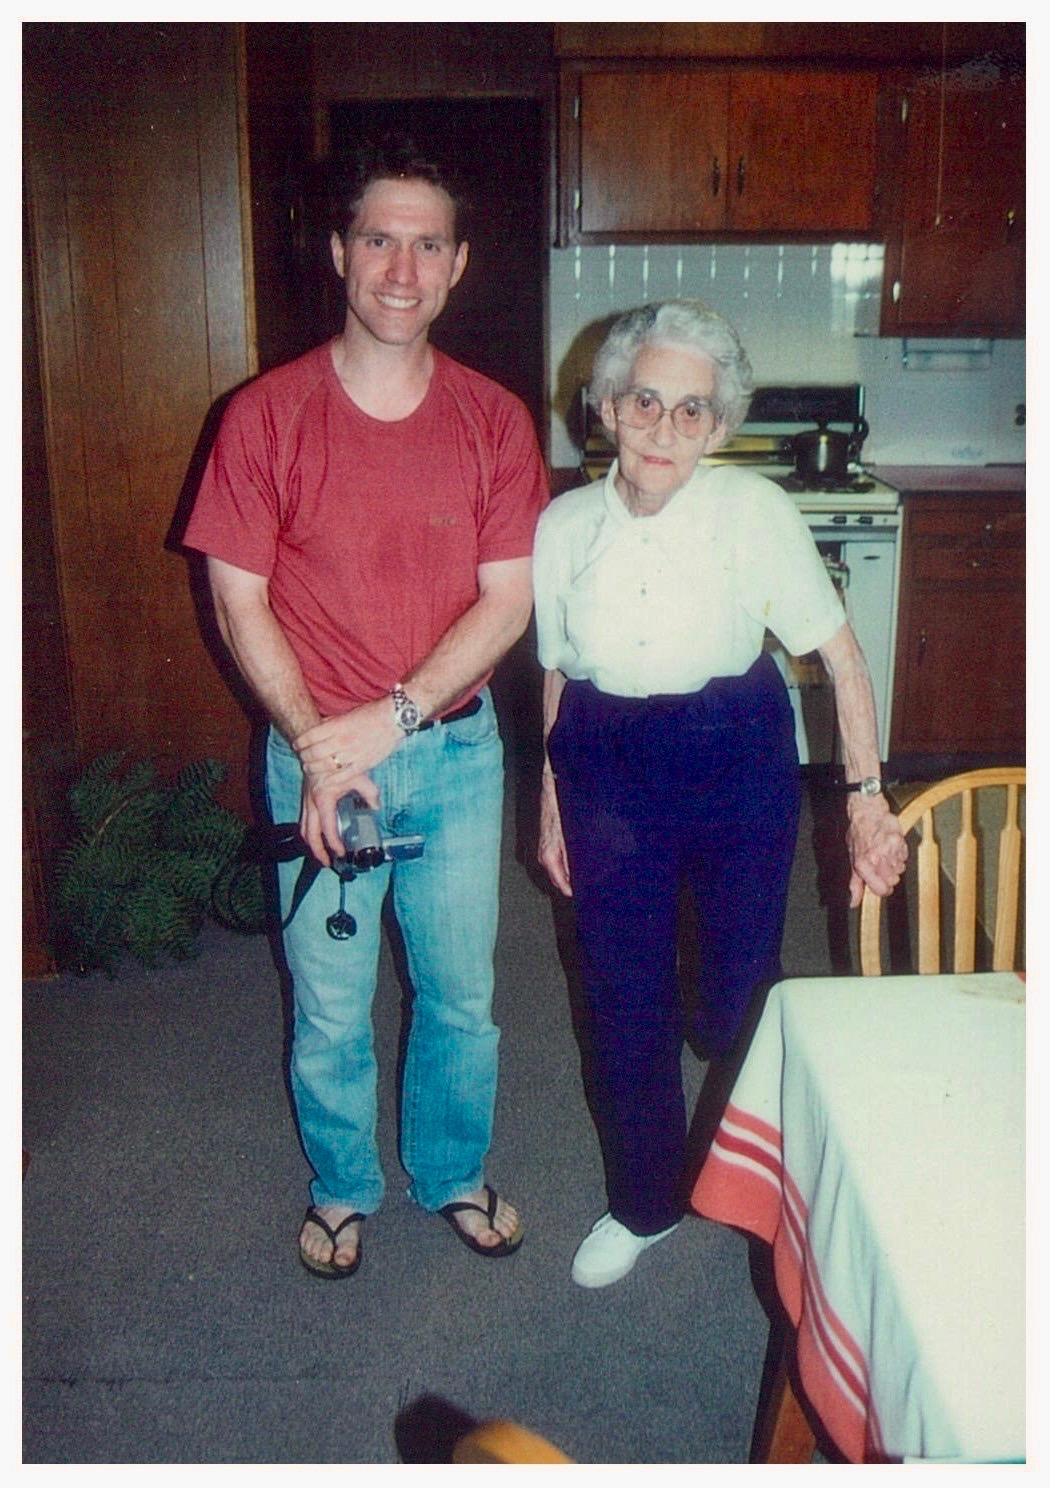 Mrs. Lura Long, wife of Cpl. John Long, and Nathan Long, whose father was the elder brother of Cpl. John Long.. Photo courtesy of Nathan Long.